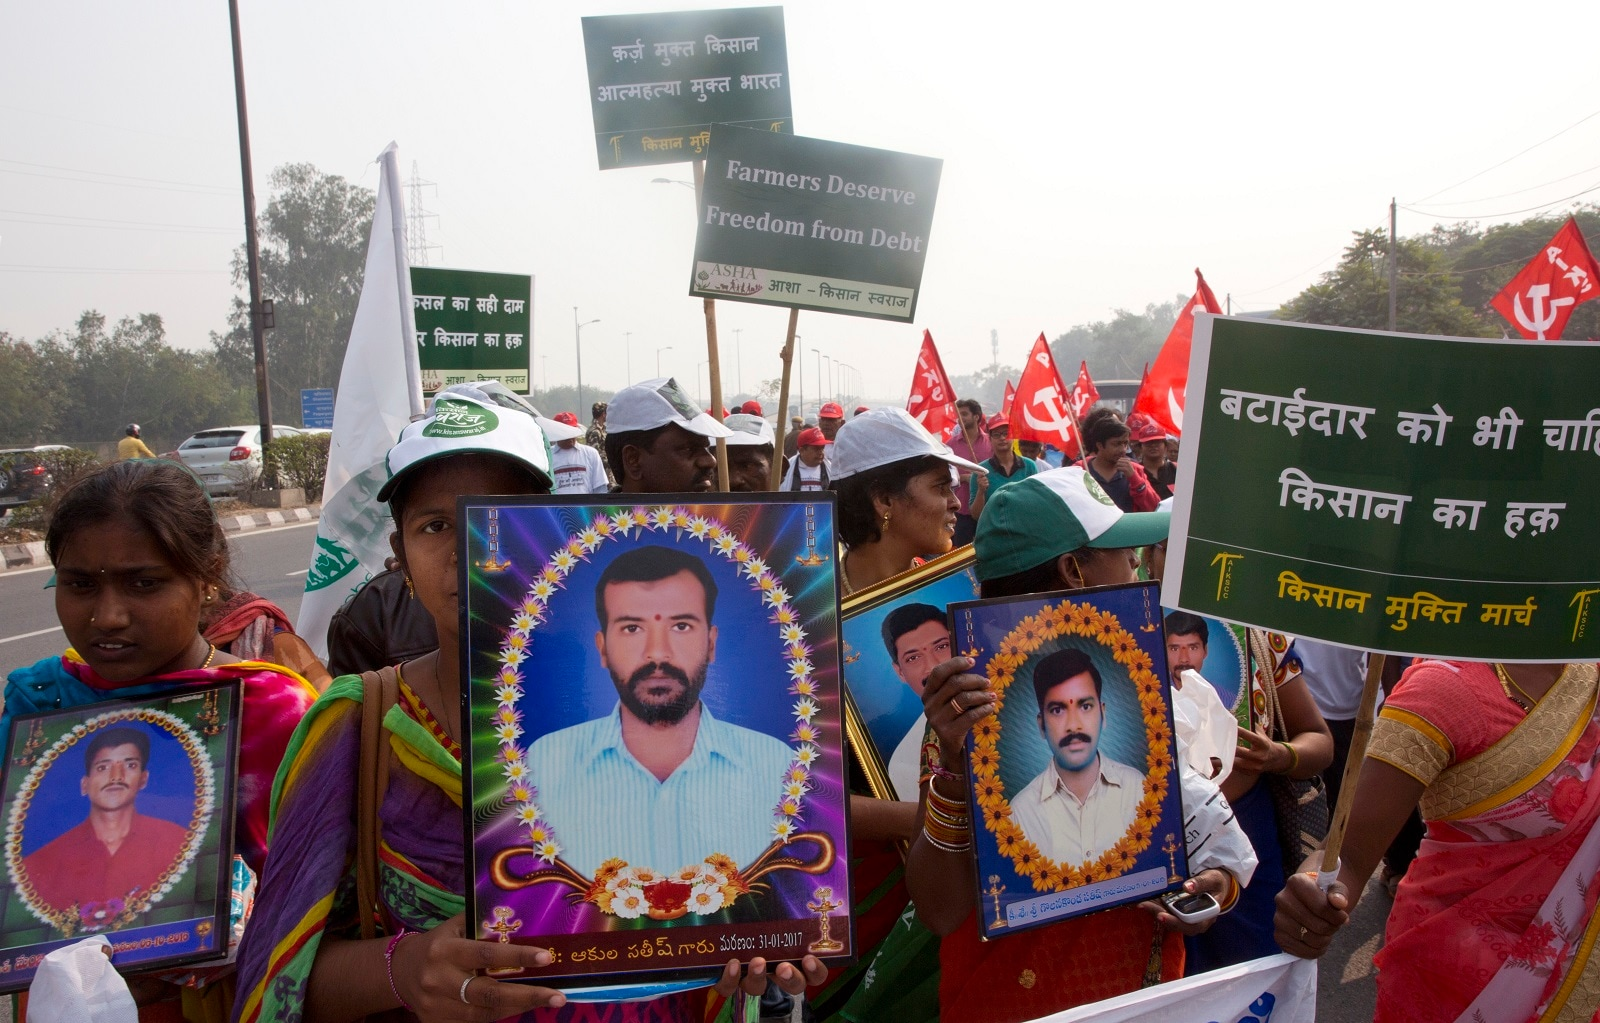 Family members of farmers carry photographs of their relatives who committed suicide as they arrive for a two day's protest in New Delhi, India, Thursday, November 29, 2018. Failed harvests force poor farmers to borrow money at high interest rates to buy seeds, fertilizers and food for their cattle. They often mortgage their land and, as debts mount, some are driven to suicide. Placard on right reads,